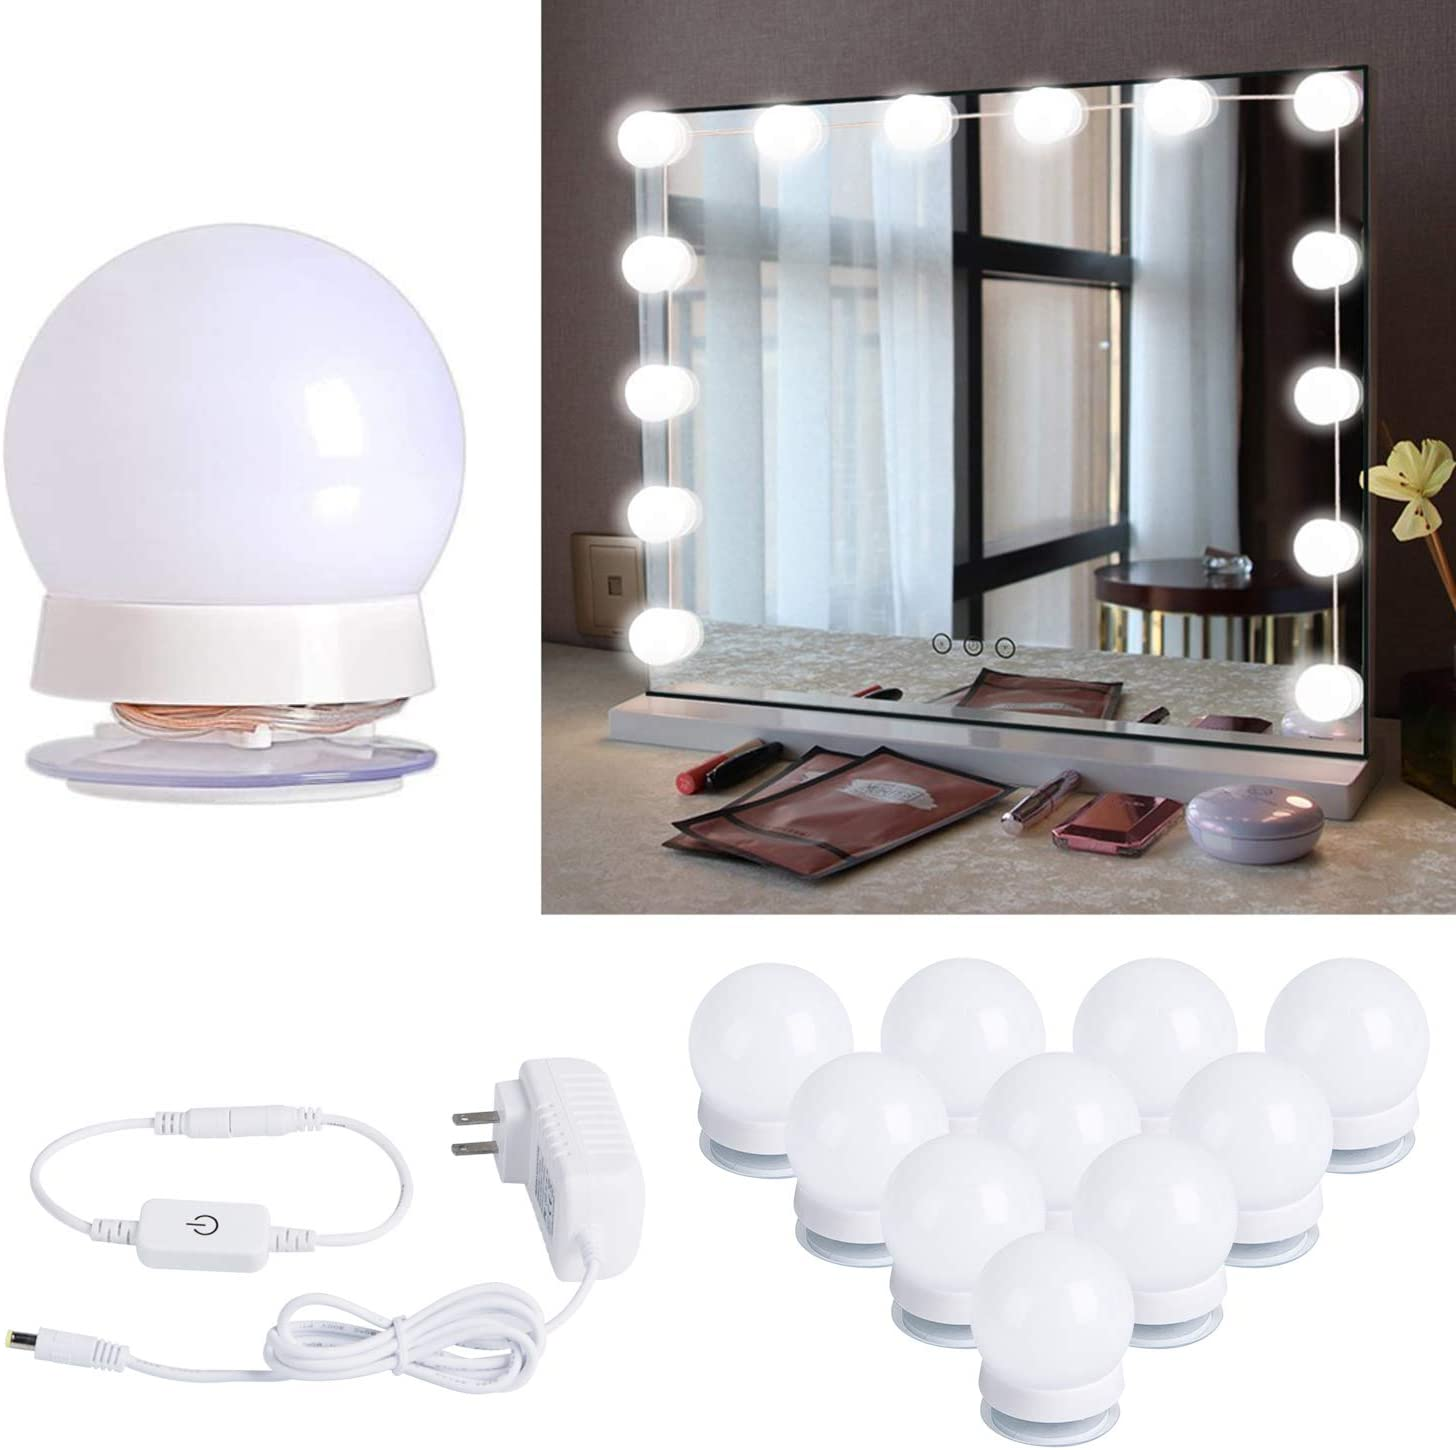 Hollywood Style Led Vanity Mirror Lights Kit with 10 Dimmable Light Bulbs for Makeup Dressing Table and Power Supply Plug in Lighting Fixture Strip, Vanity Mirror Light, White (No Mirror Included) - -